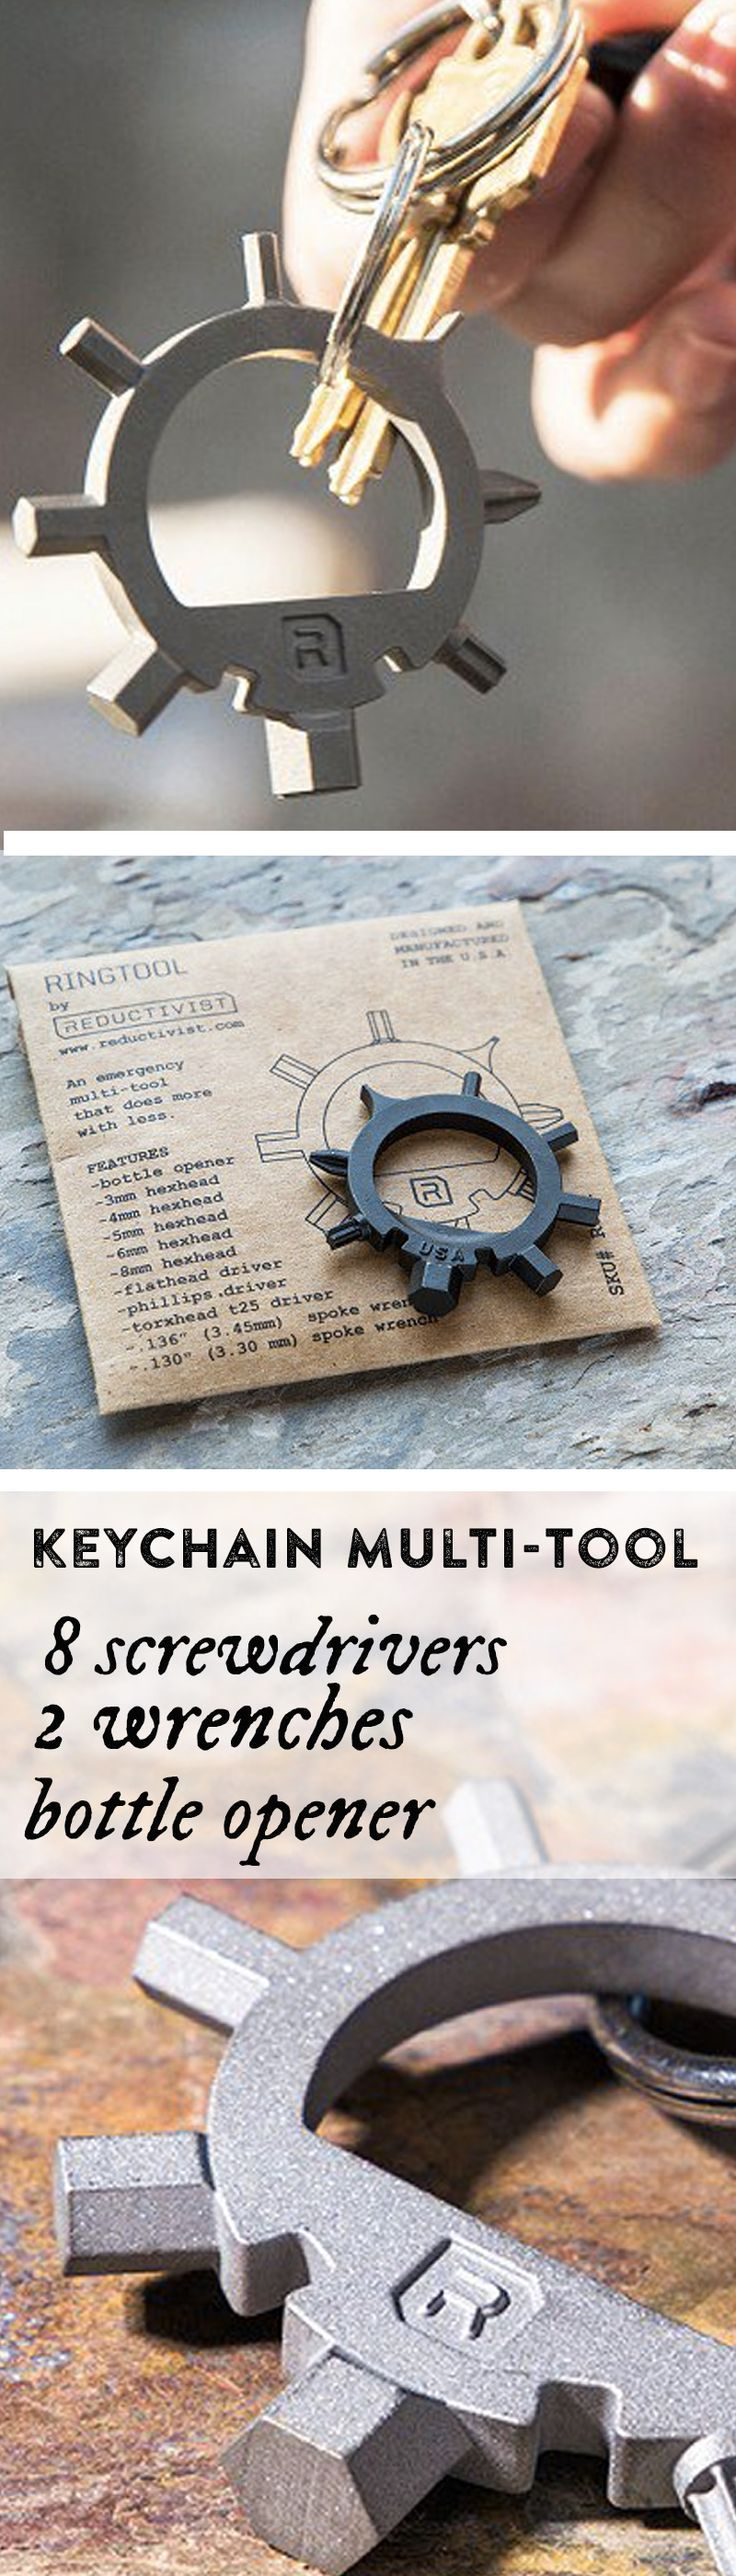 Keep 8 screwdrivers, 2 wrenches & a bottle opener on your keychain. Made in NY, this almost indestructible multi-tool weighs under an ounce.